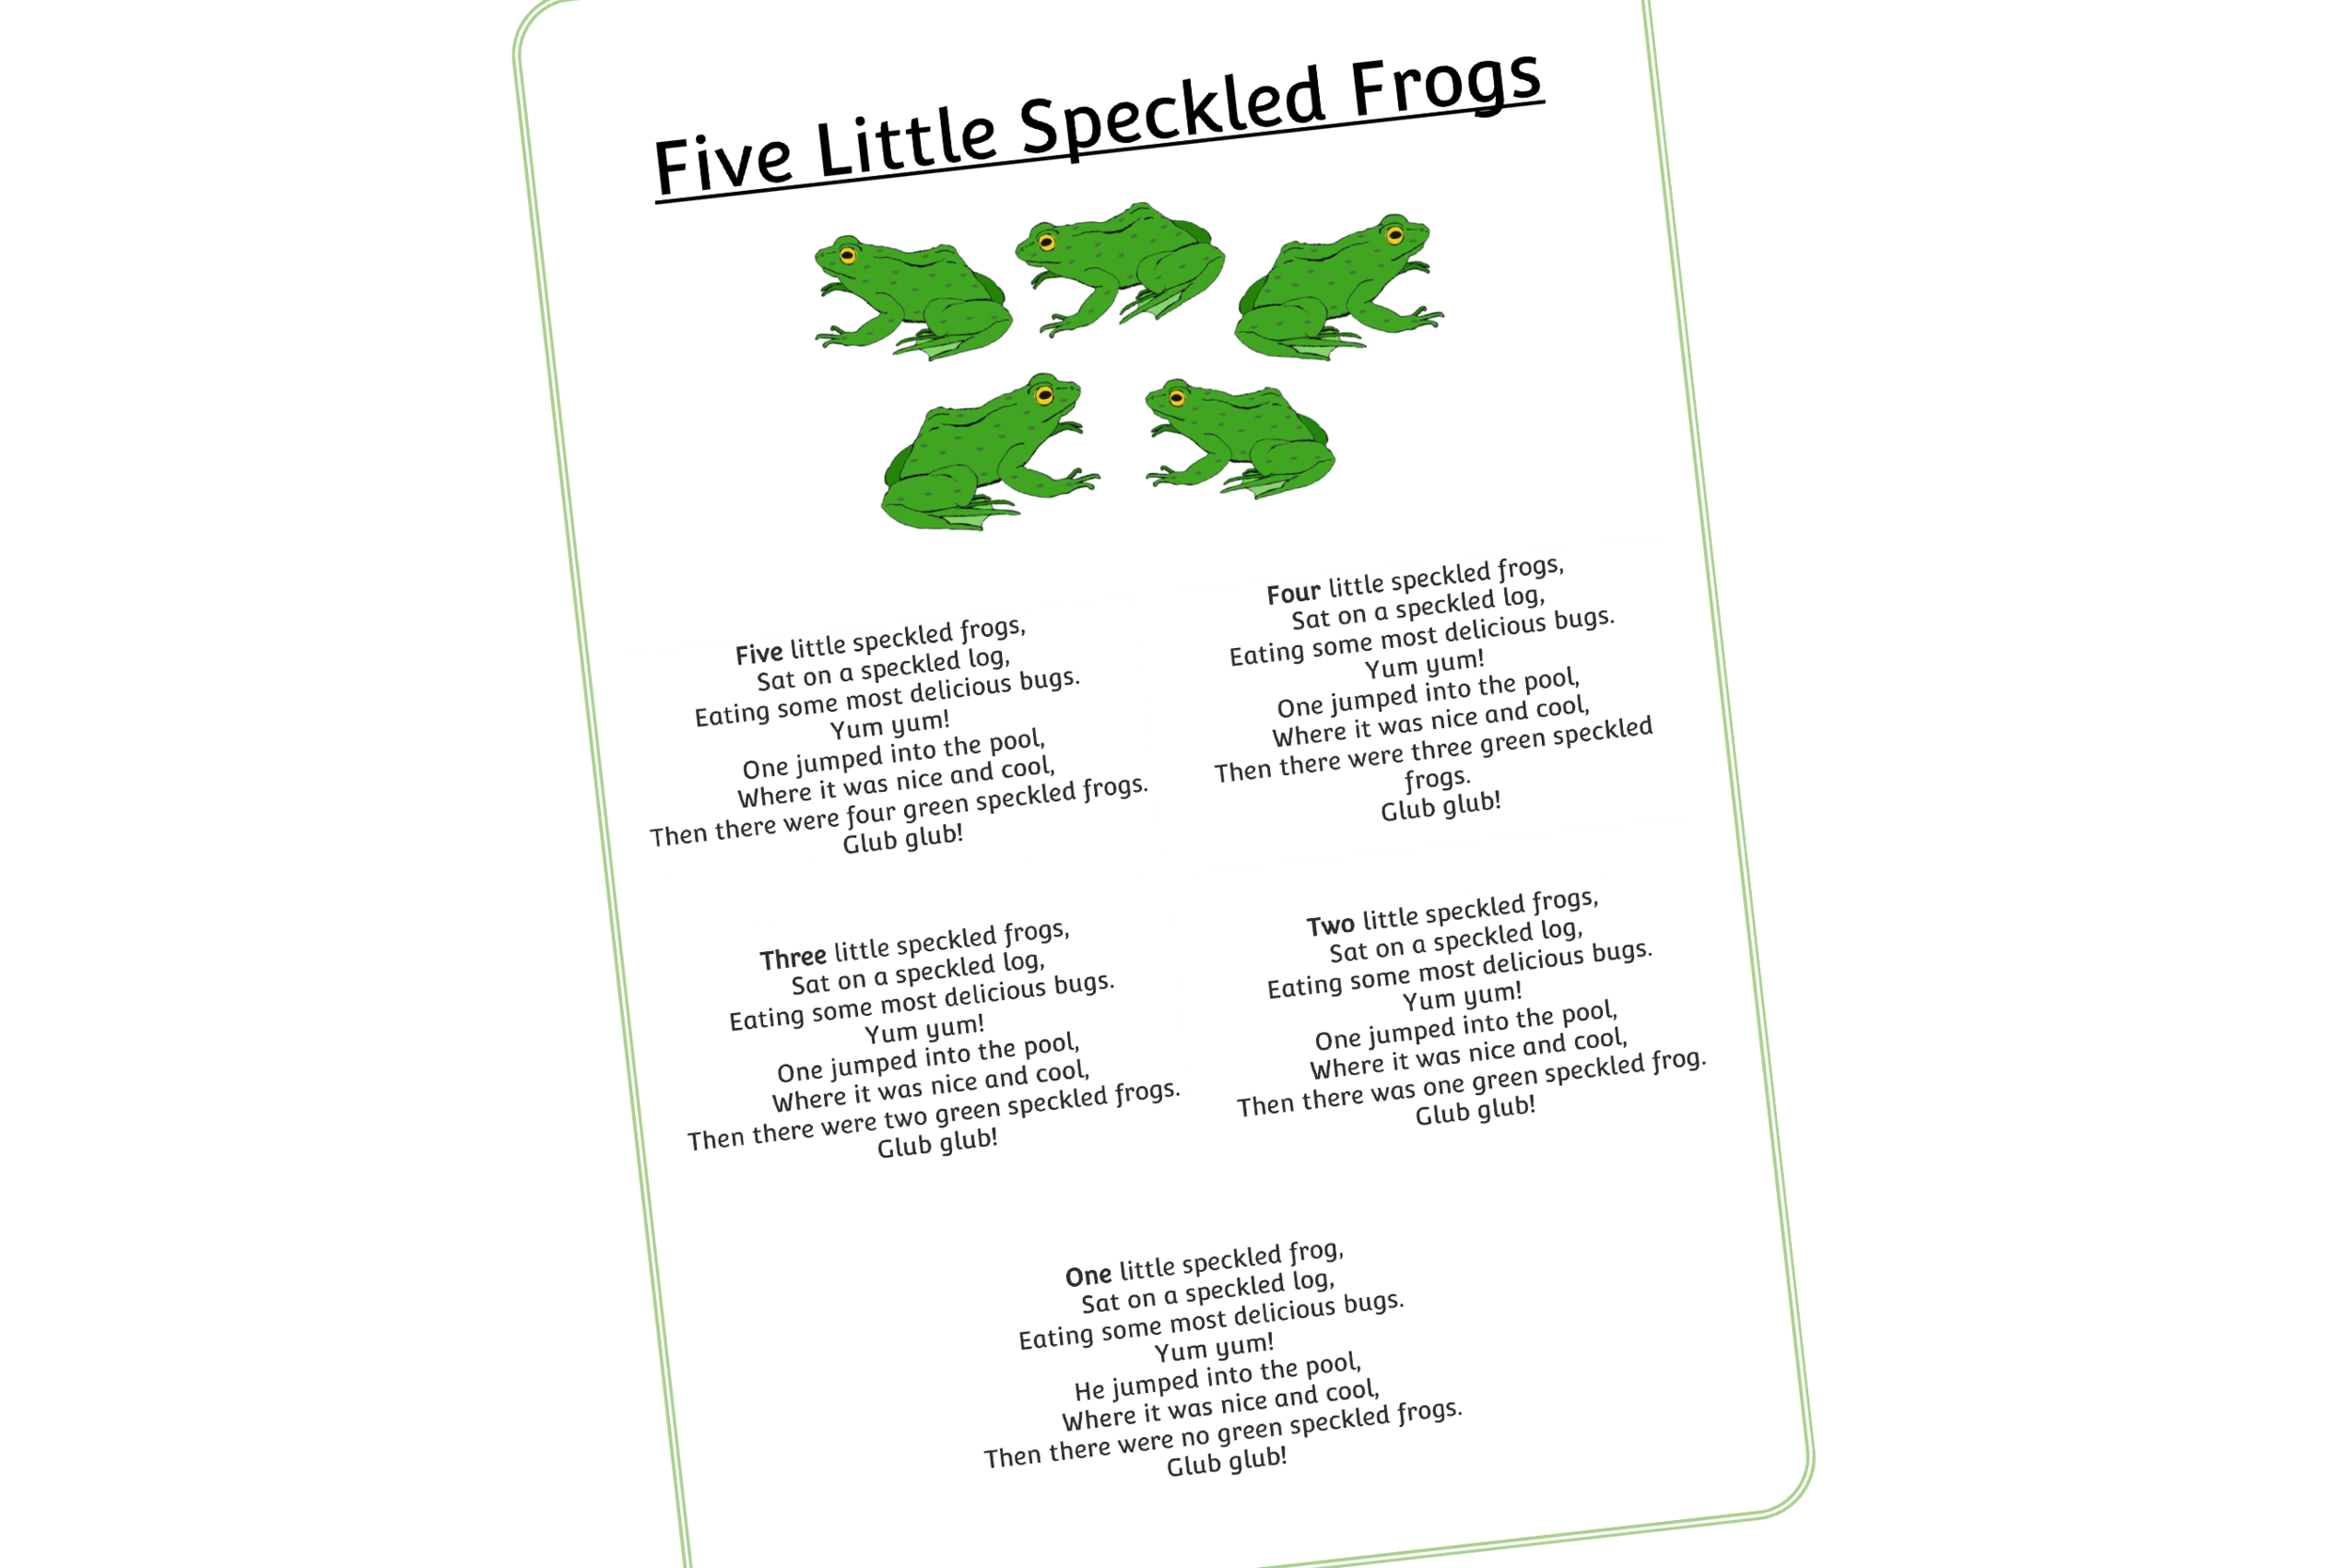 FIVE SPECKLED FROGS WORDS